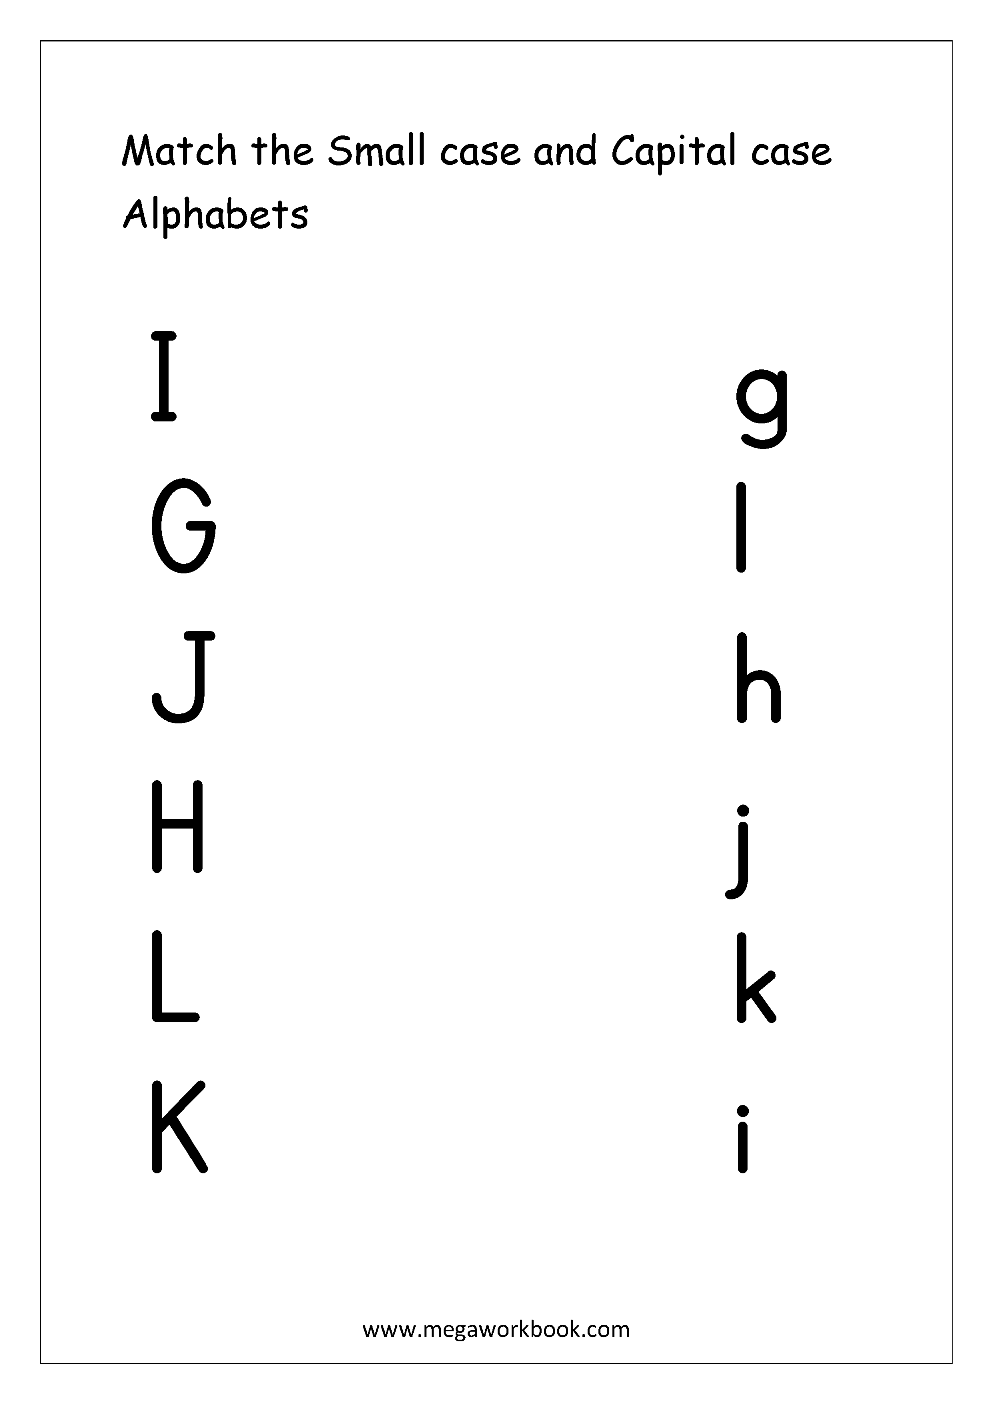 English Worksheet - Match Small And Capital Letters   Letter worksheets [ 1403 x 992 Pixel ]